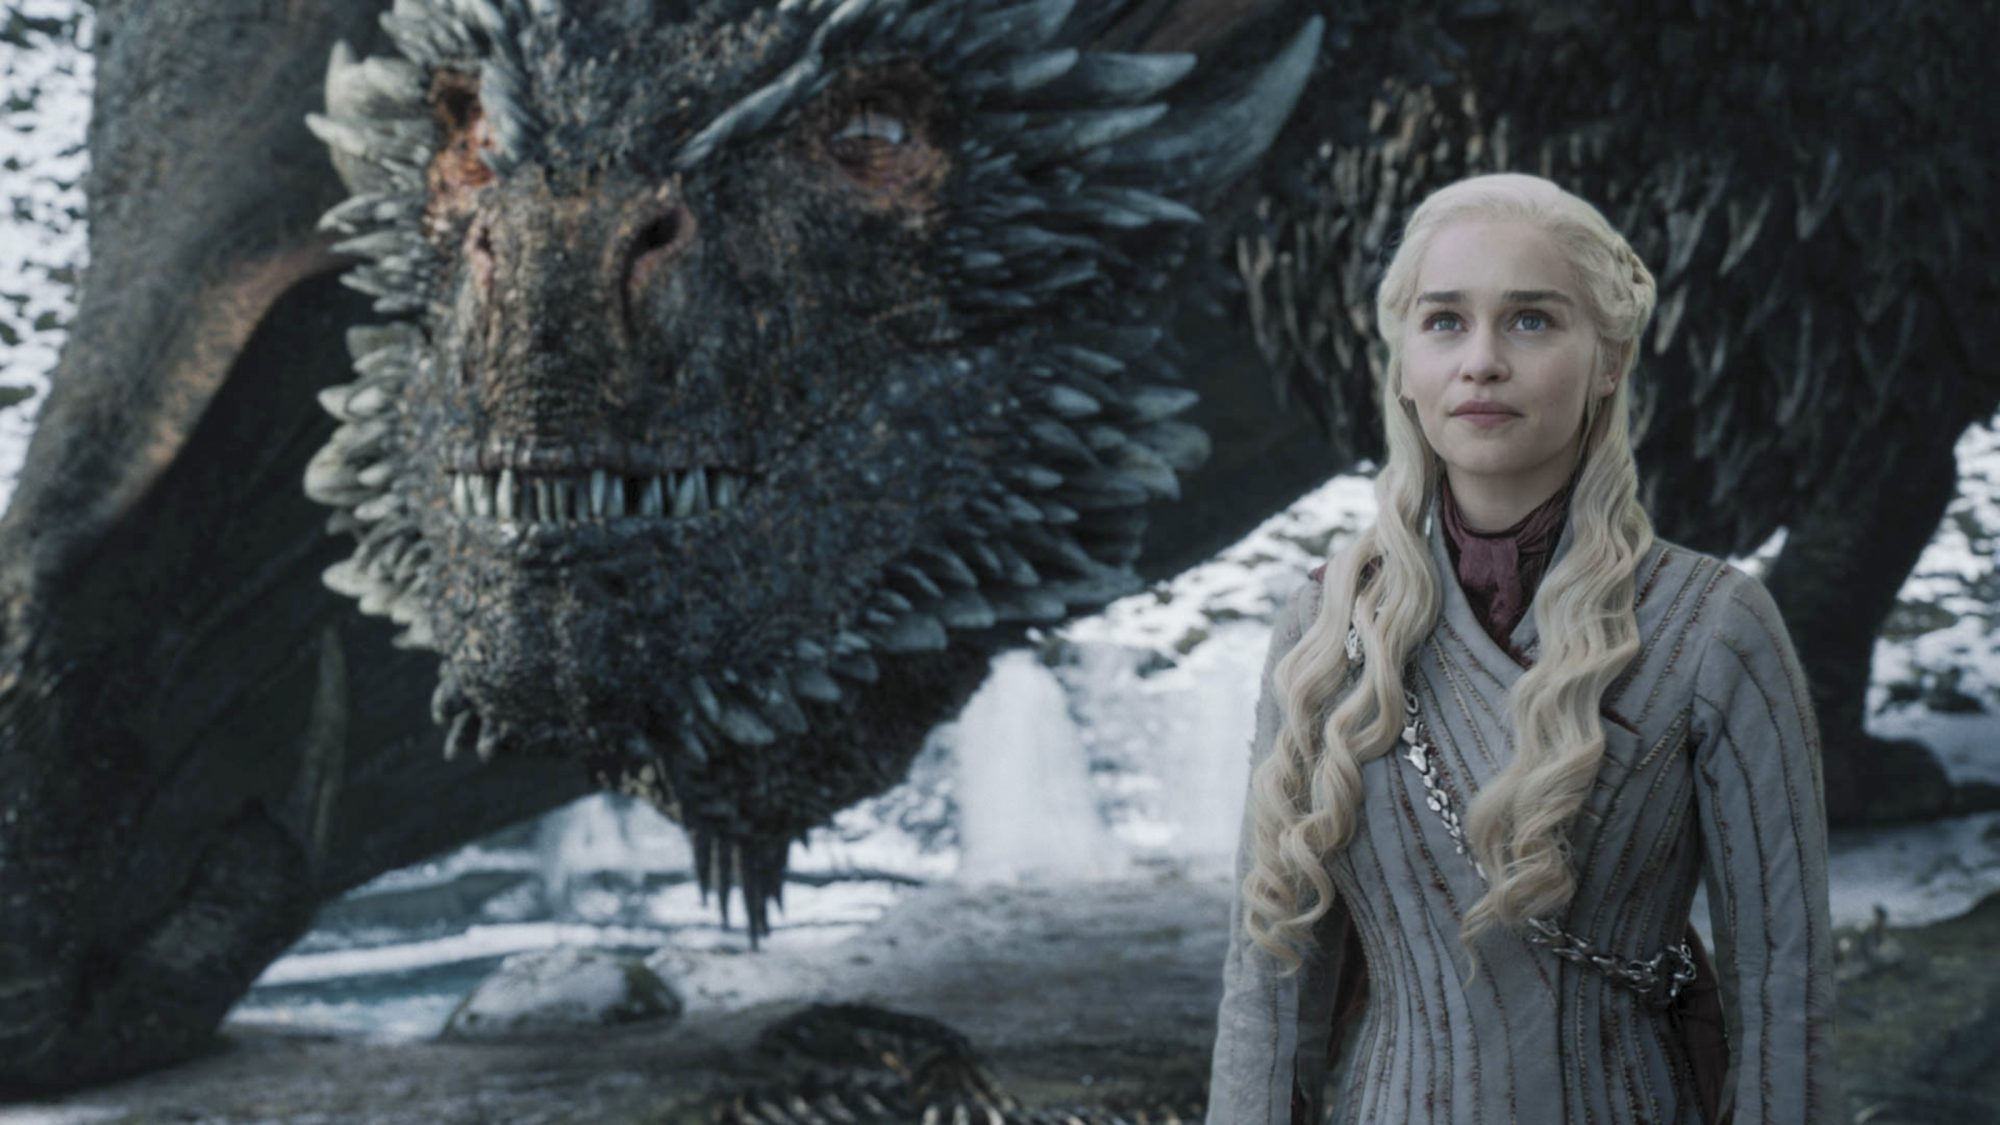 Game of Thrones Season 8, Episode 4 Emilia Clarke as Daenerys Targaryen – Photo: Courtesy of HBO